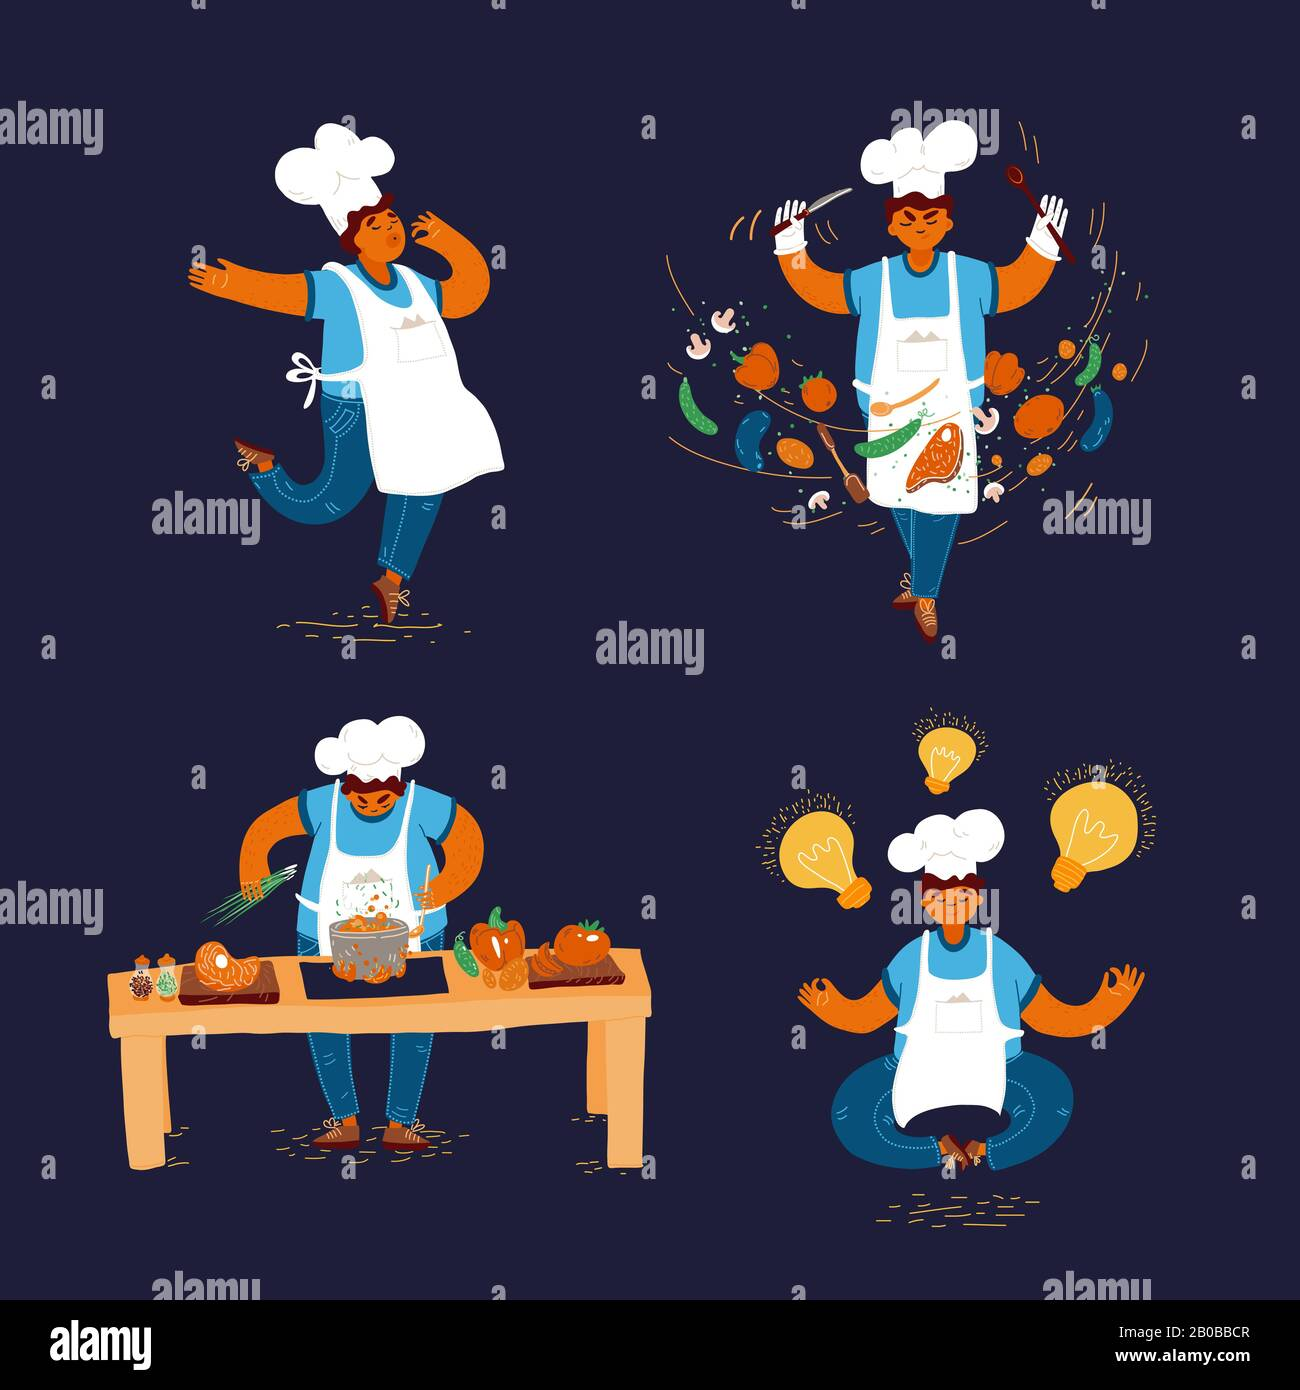 Vector Cartoon Illustration Of Home And Small Restaurant Male Man Cook Concepts Creating Ideas For Cooking Conducting Cook Process Chef Man Showing Stock Vector Image Art Alamy